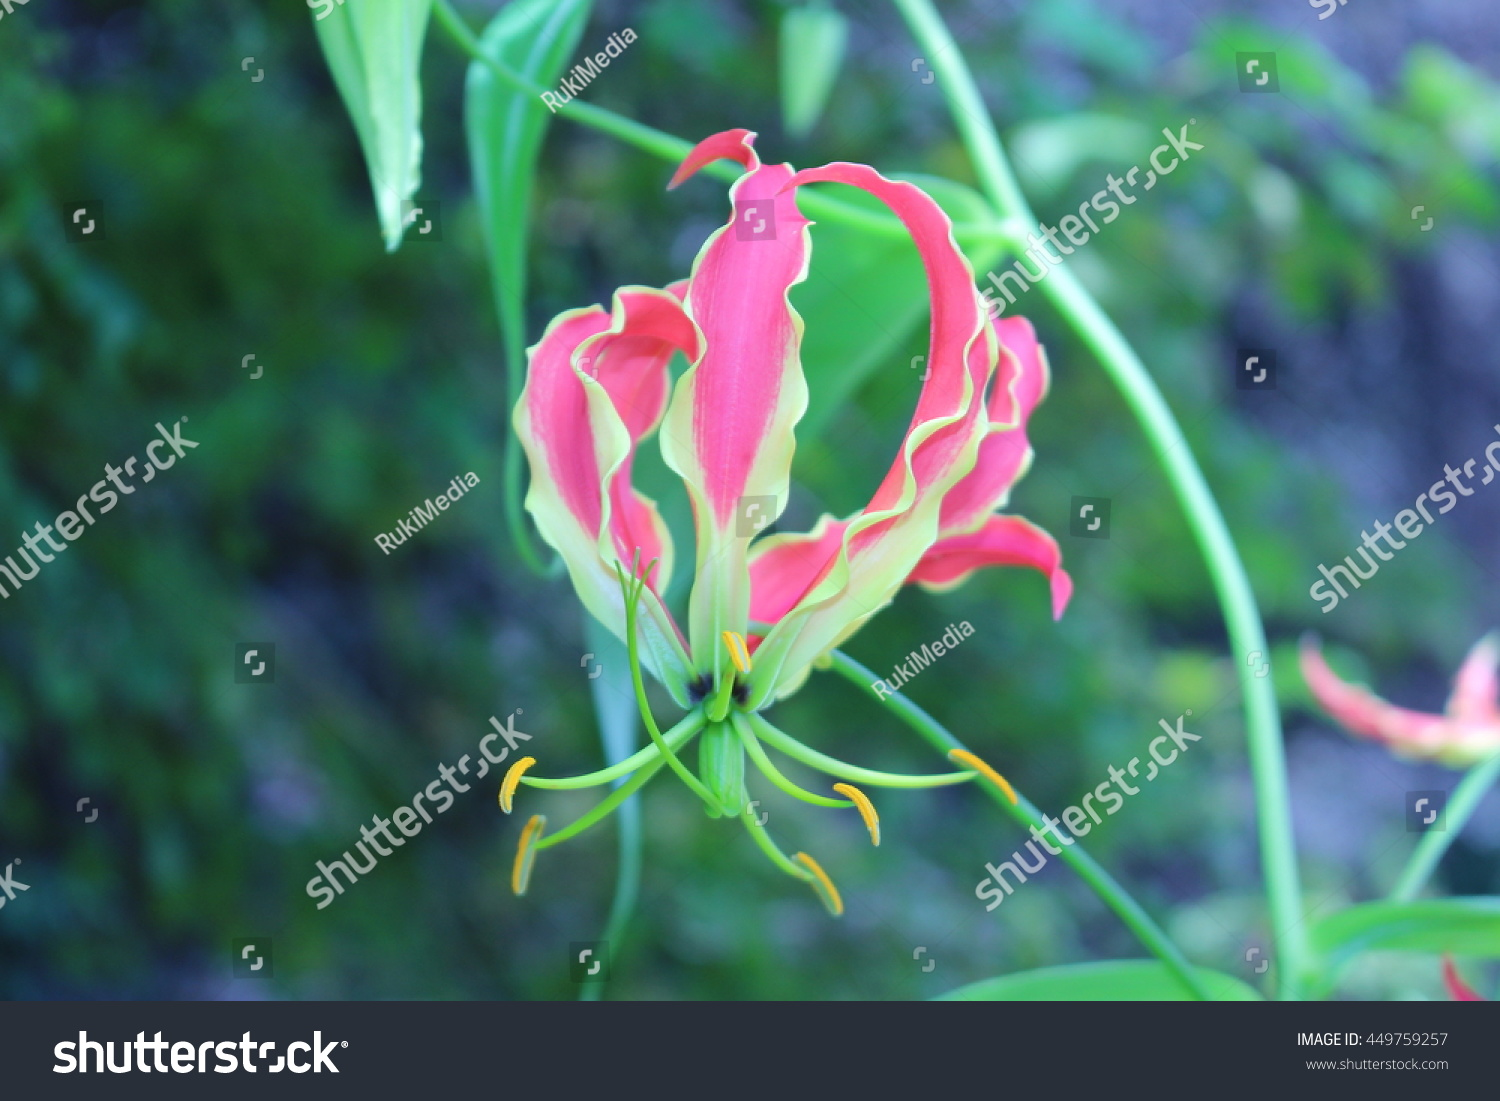 Red yellow flame lily flower or stock photo edit now 449759257 red and yellow flame lily flower or climbing lily creeping lily izmirmasajfo